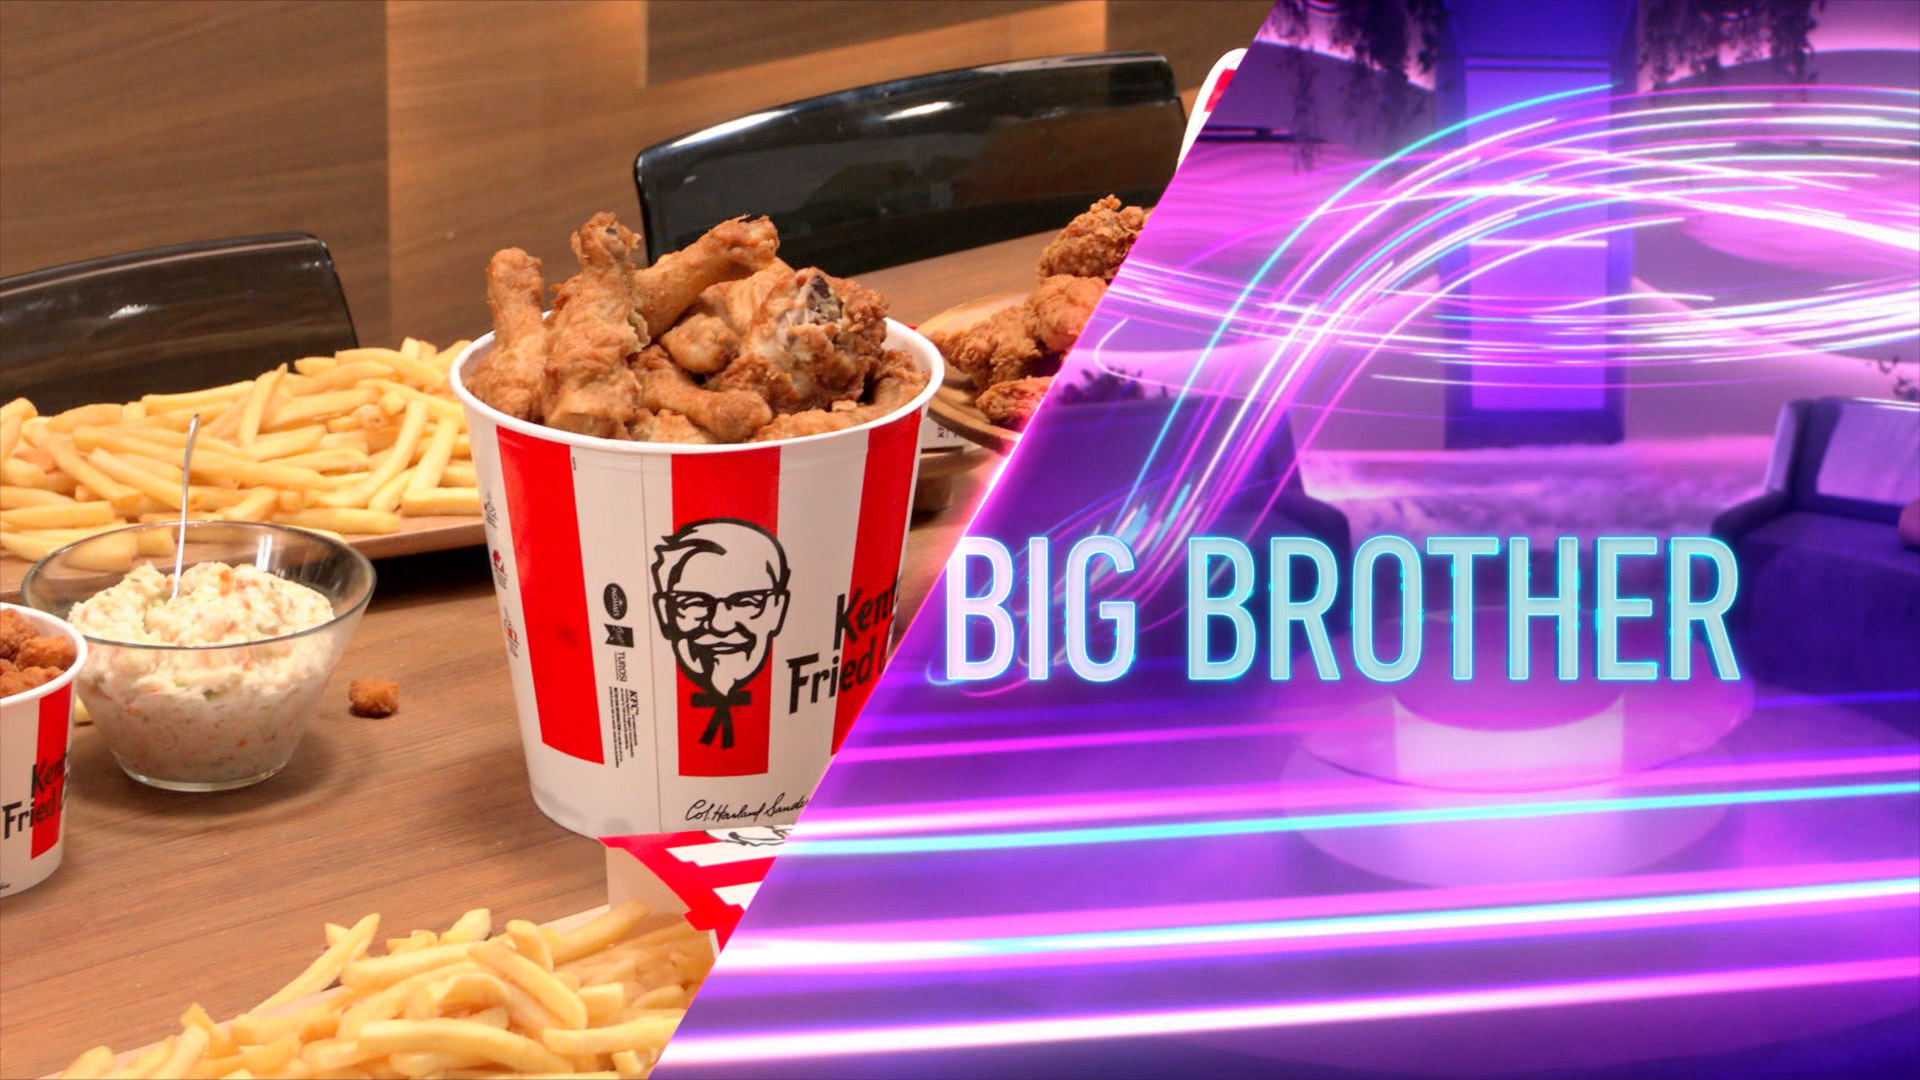 Big Brother changed the game for KFC in 2020